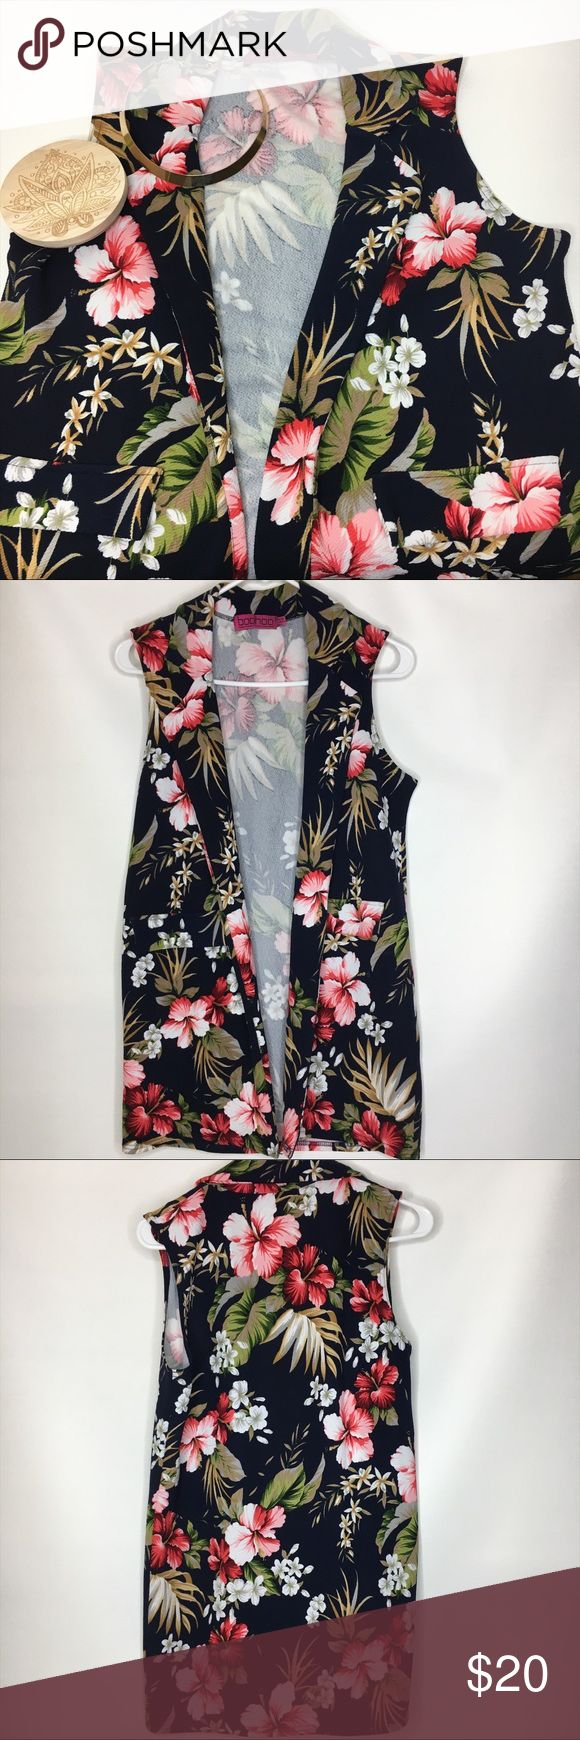 Tropical sleeveless duster coat Boohoo tropical sleeveless duster coat. Can easily dress up any outfit but can also give out casual but chic vibes. Two front faux pockets. Size 6 but the material is very stretchy so can fit many sizes! In excellent, like new condition. Boohoo Jackets & Coats